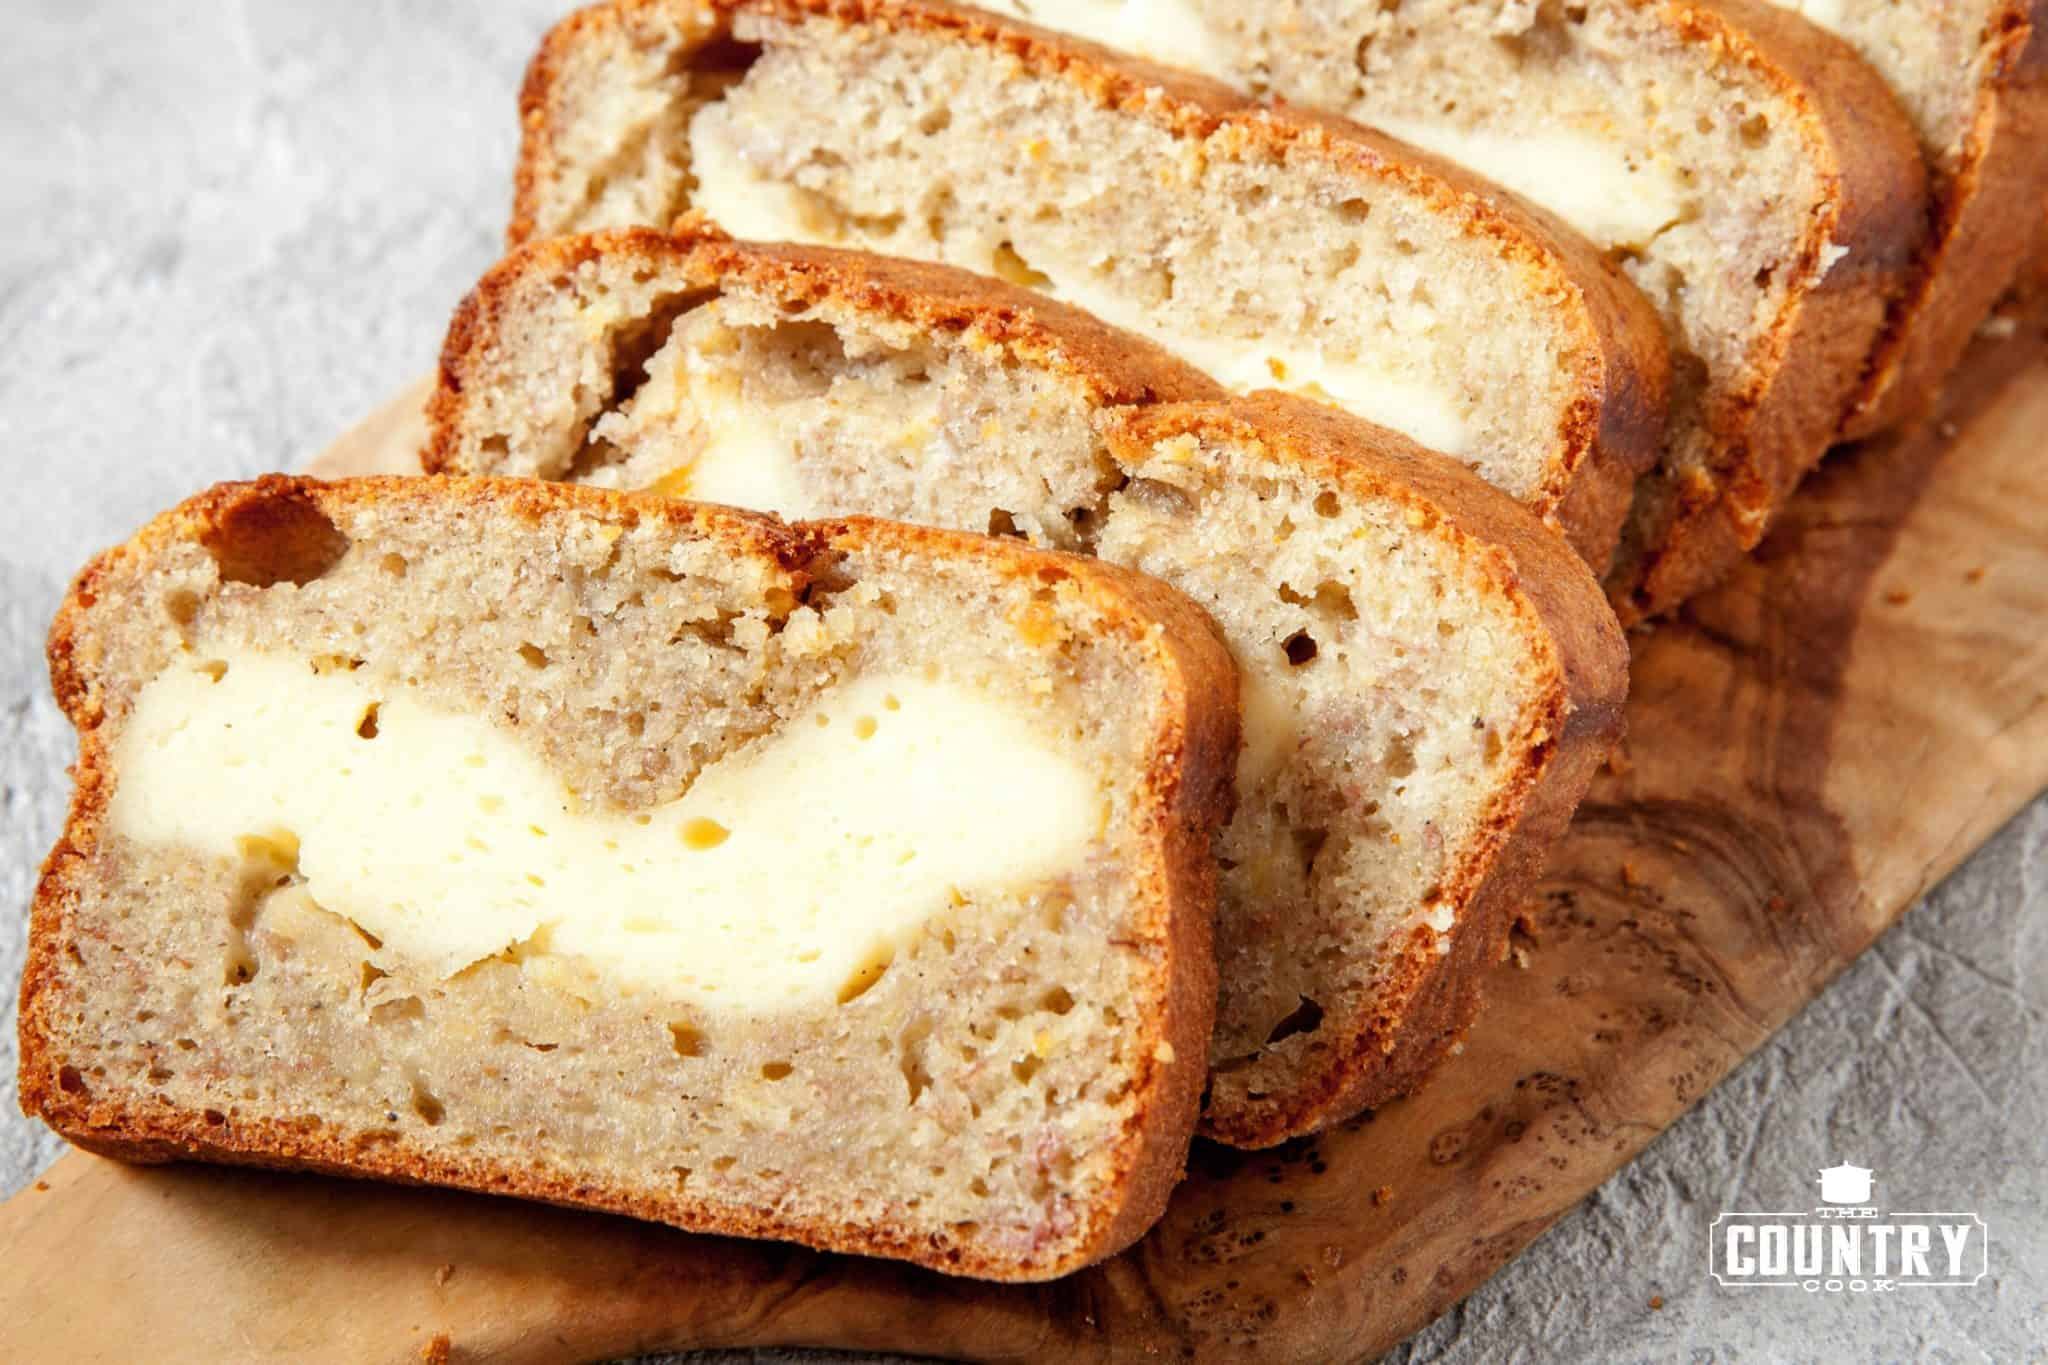 Cheesecake stuffed banana bread the country cook cheesecake stuffed banana bread forumfinder Image collections